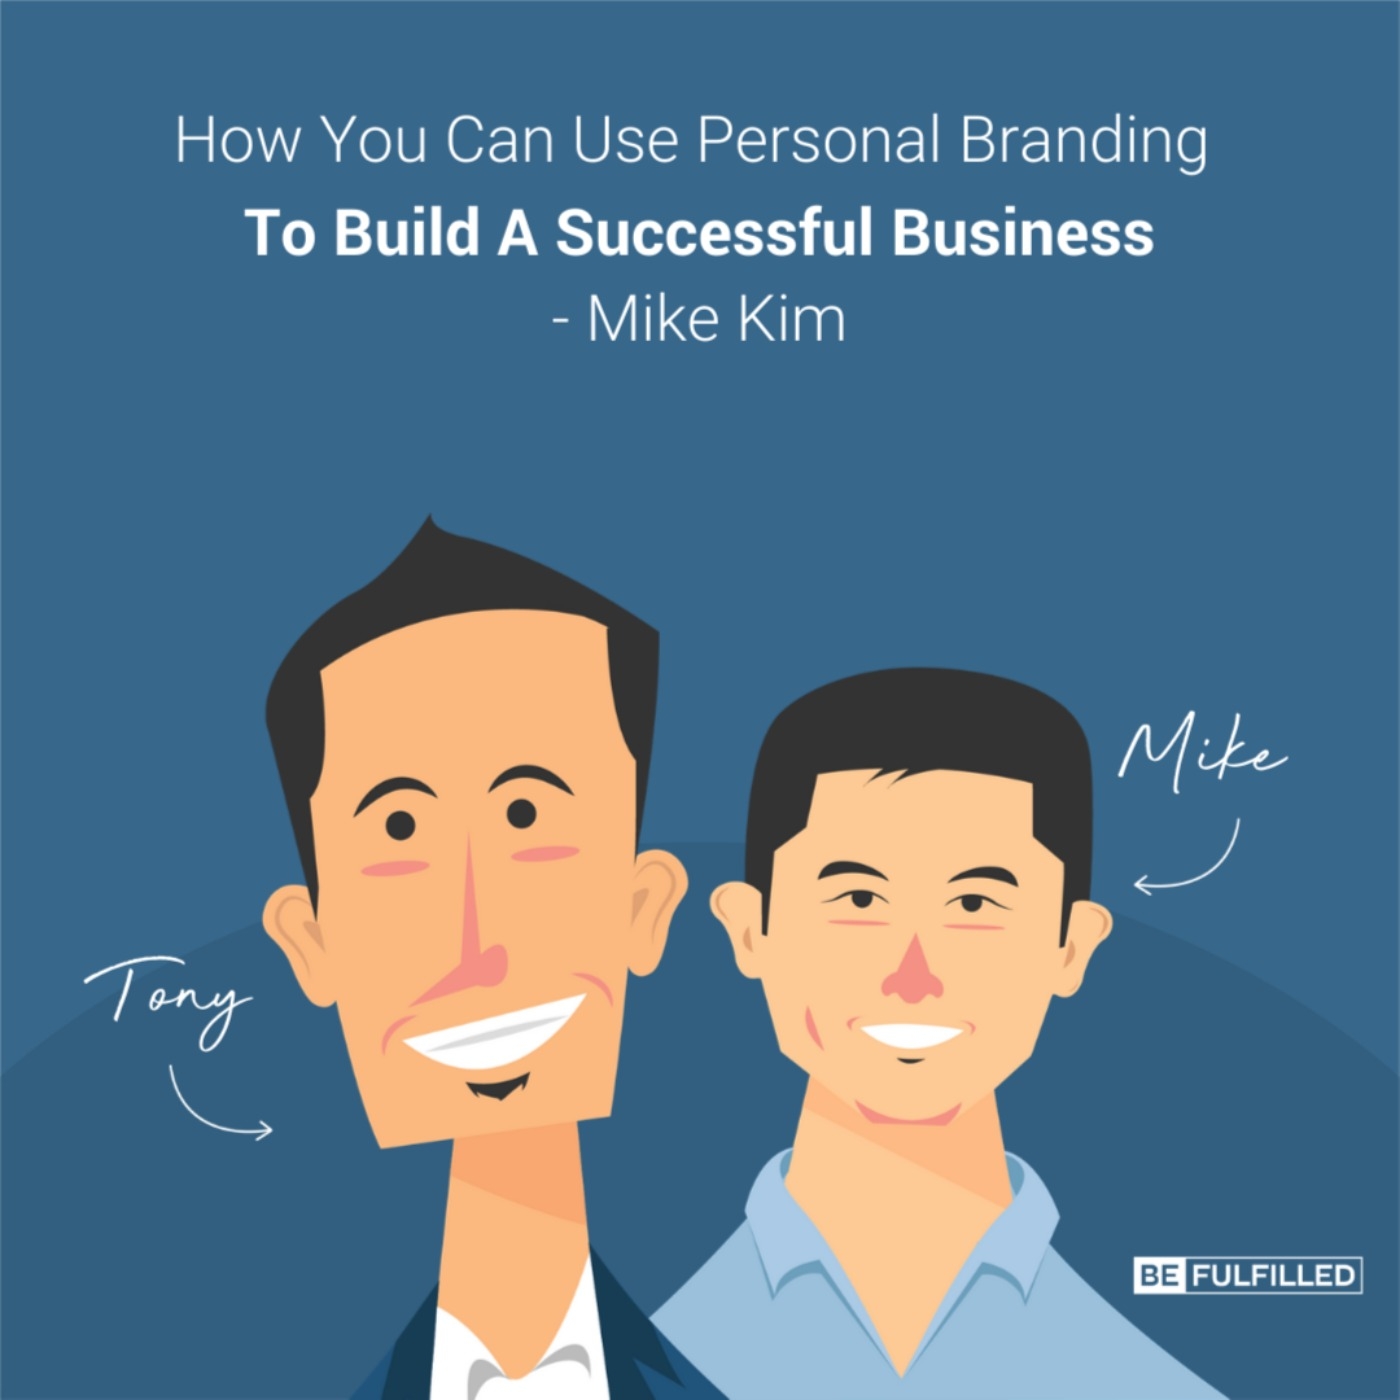 How You Can Use Personal Branding To Build A Successful Business – Mike Kim